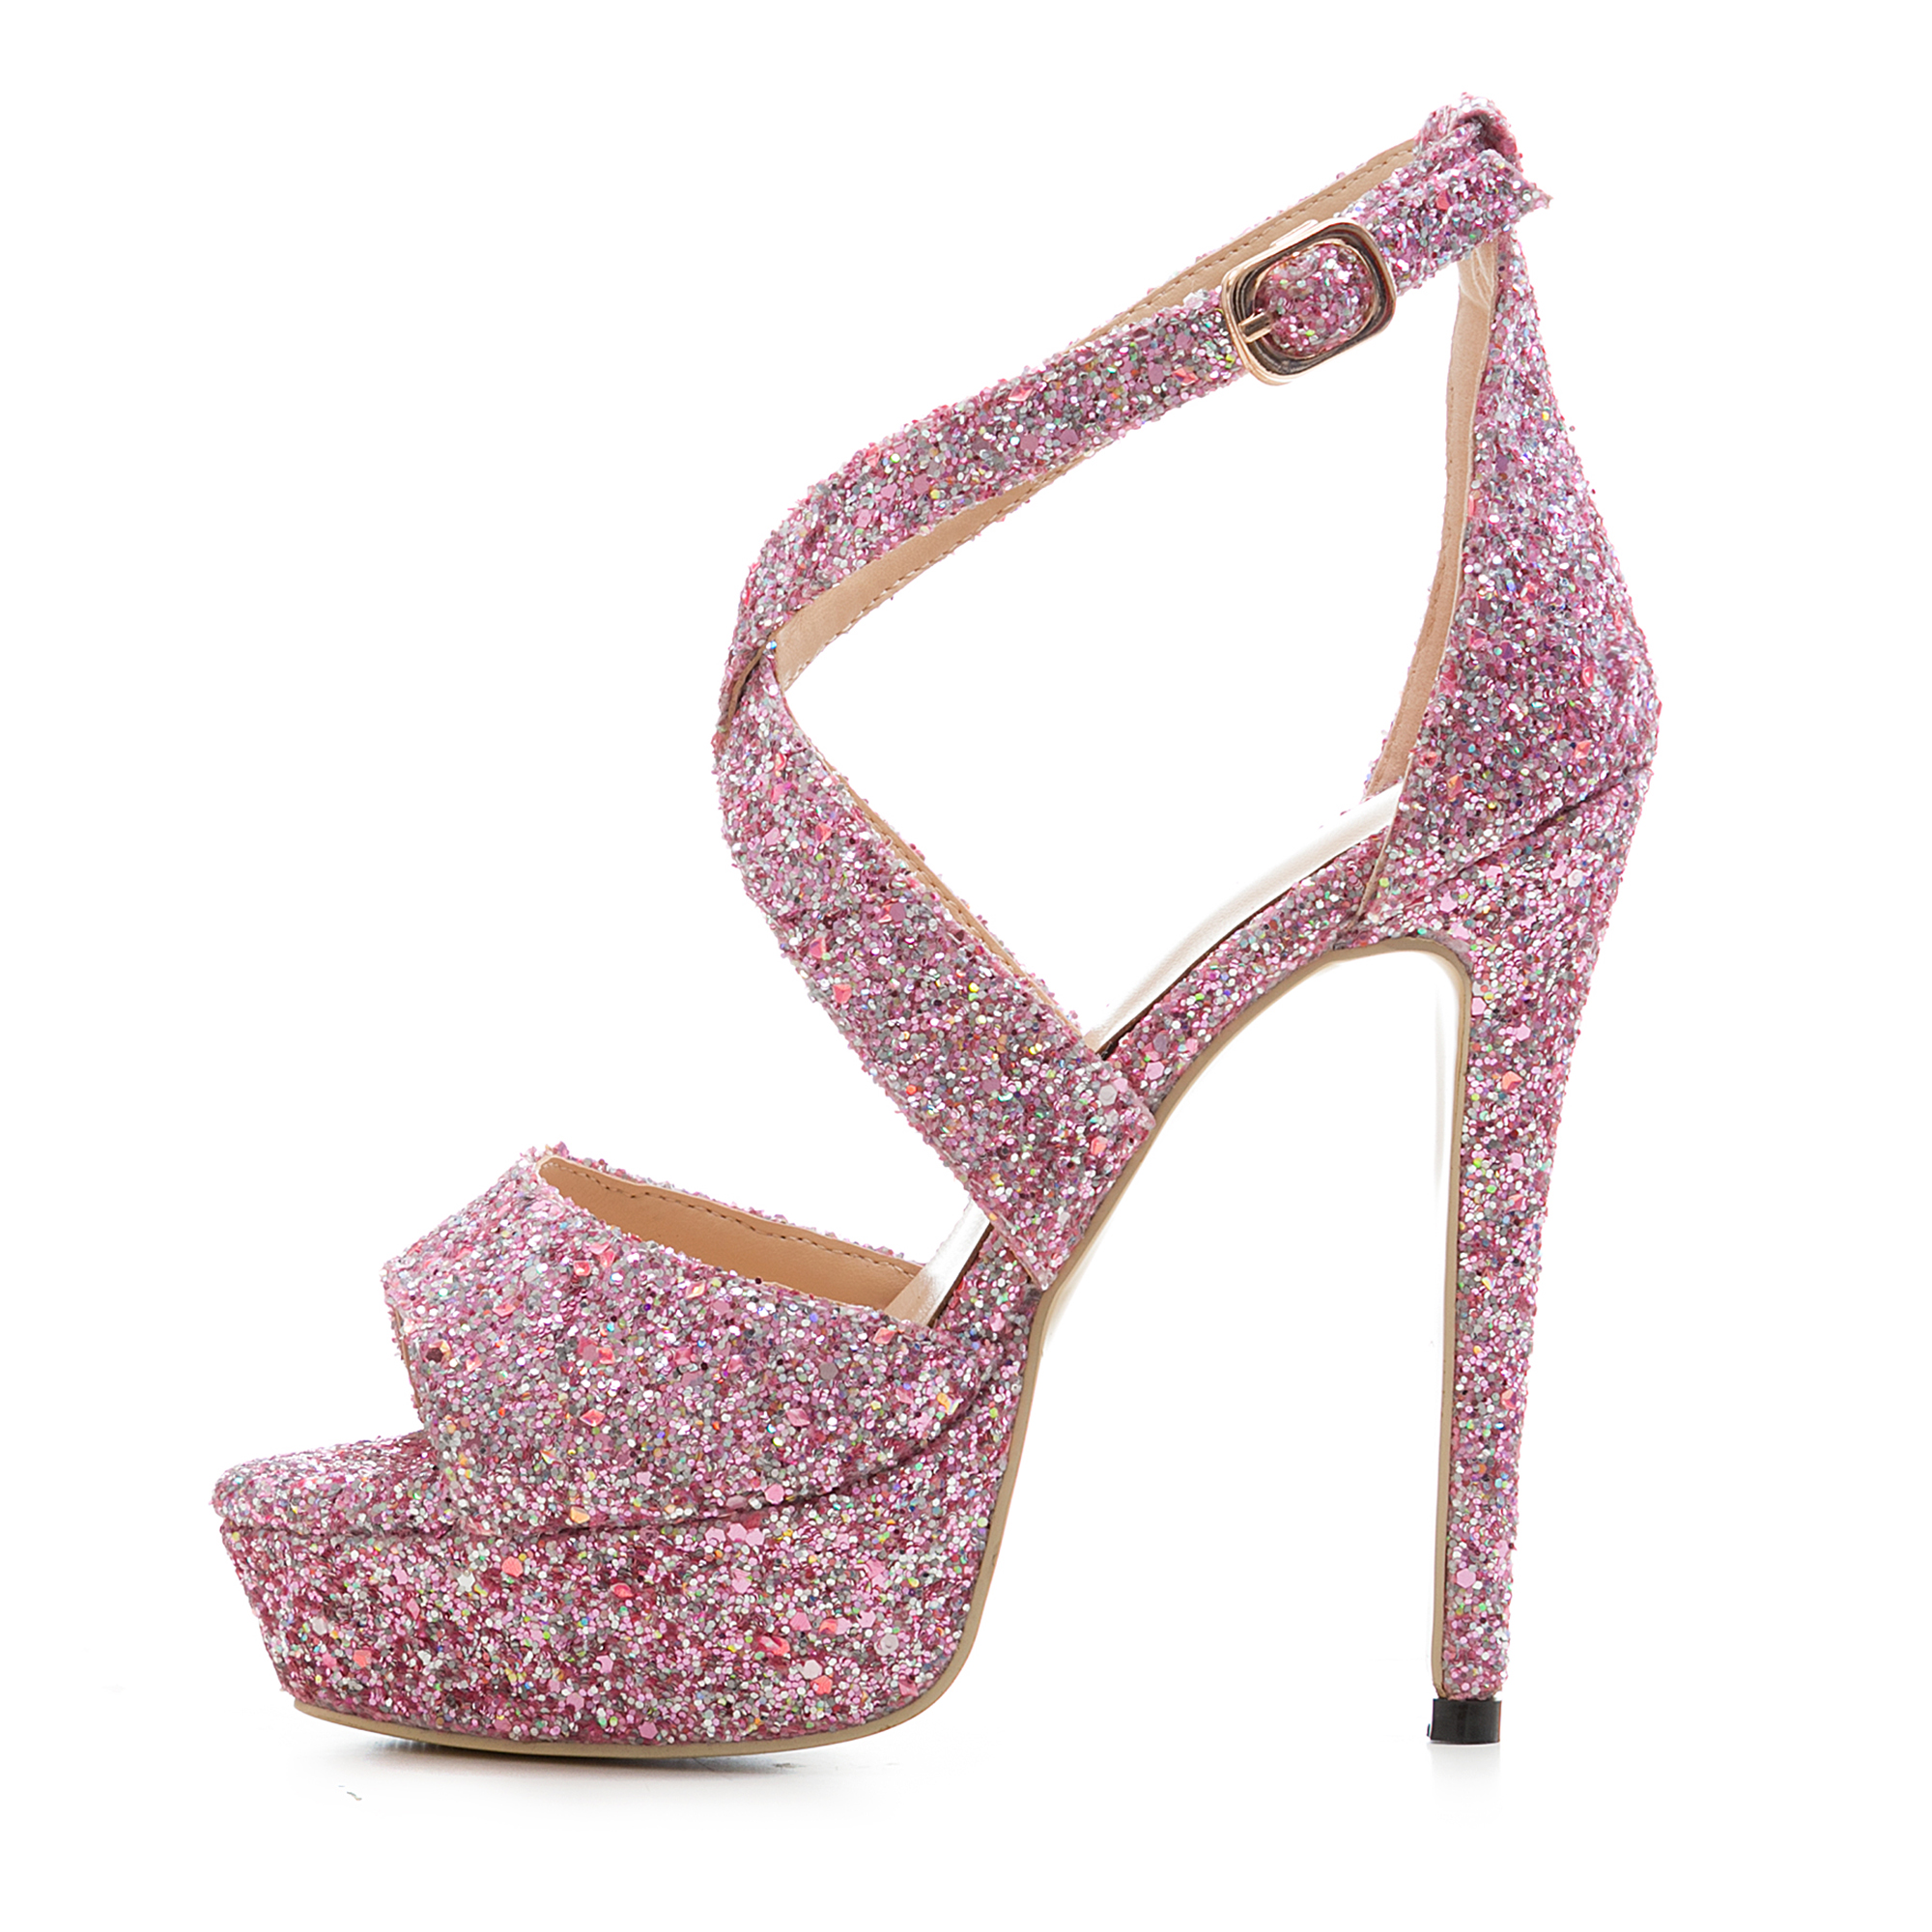 03cc434636a Arden Furtado 2018 summer sexy high heels 14cm platform bling bling  sequined cloth big size 40-43 cover heels fashion sandals